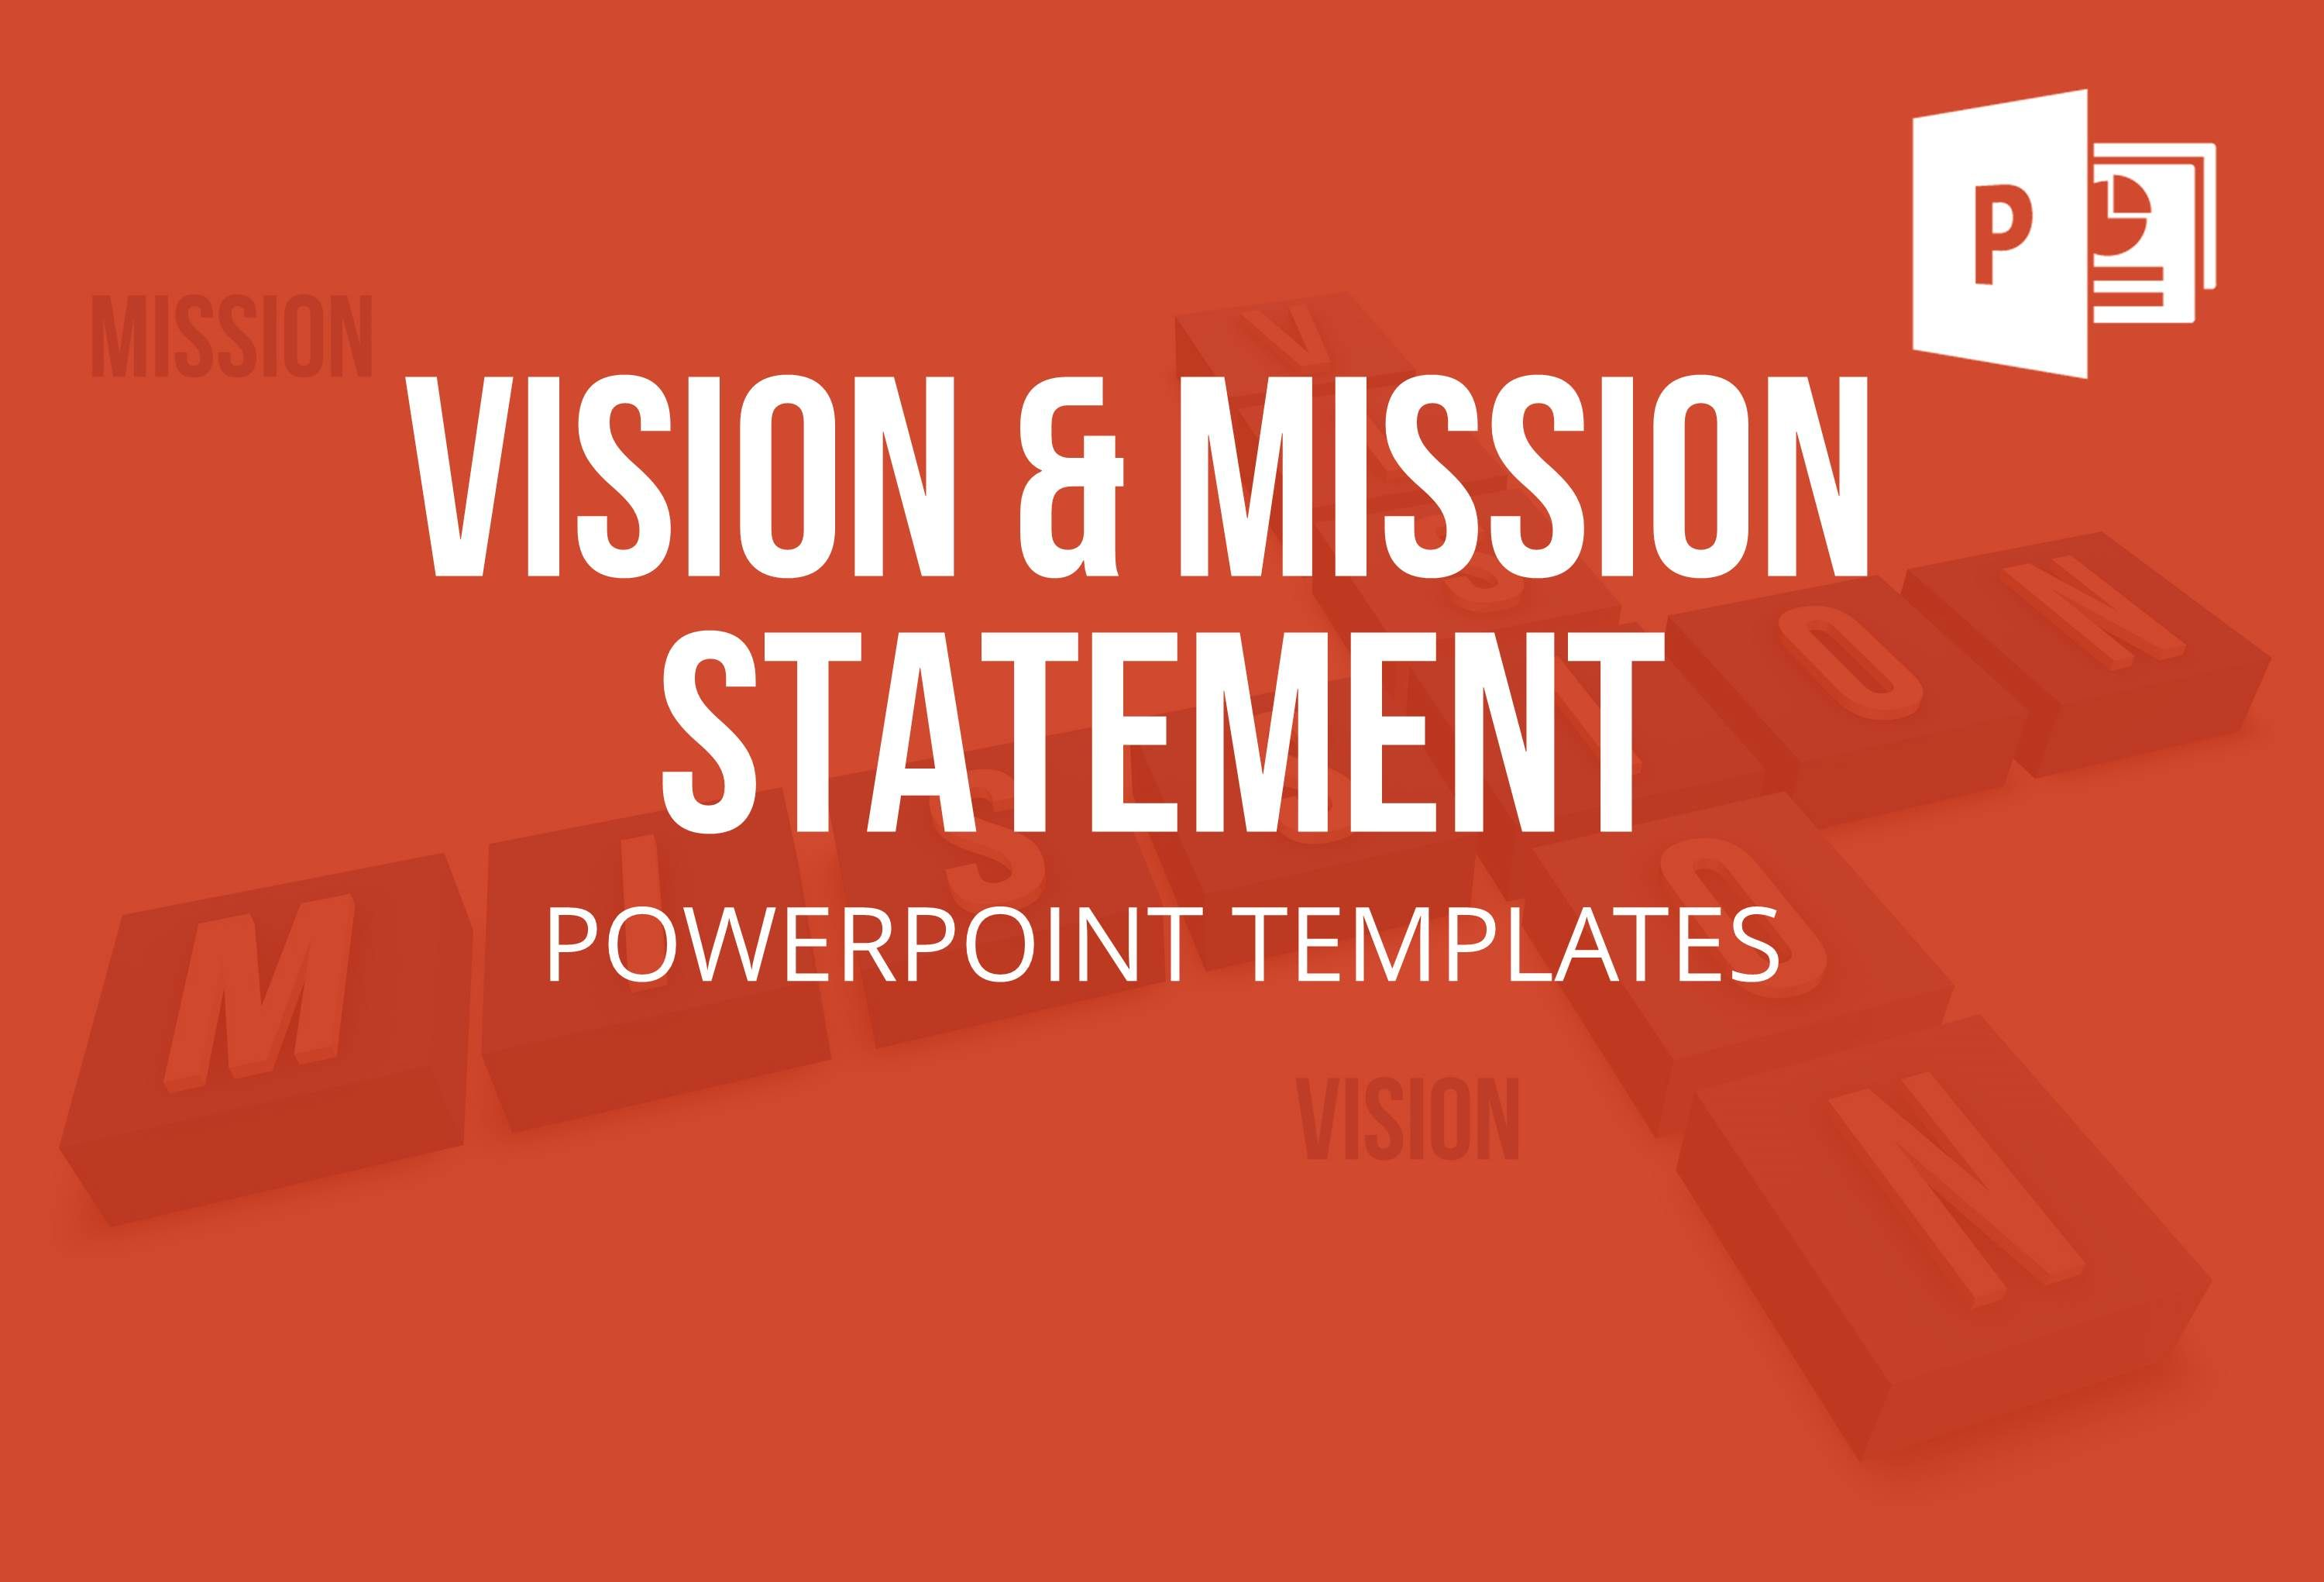 best images about company presentation powerpoint templates 17 best images about company presentation powerpoint templates on branding value proposition and modern